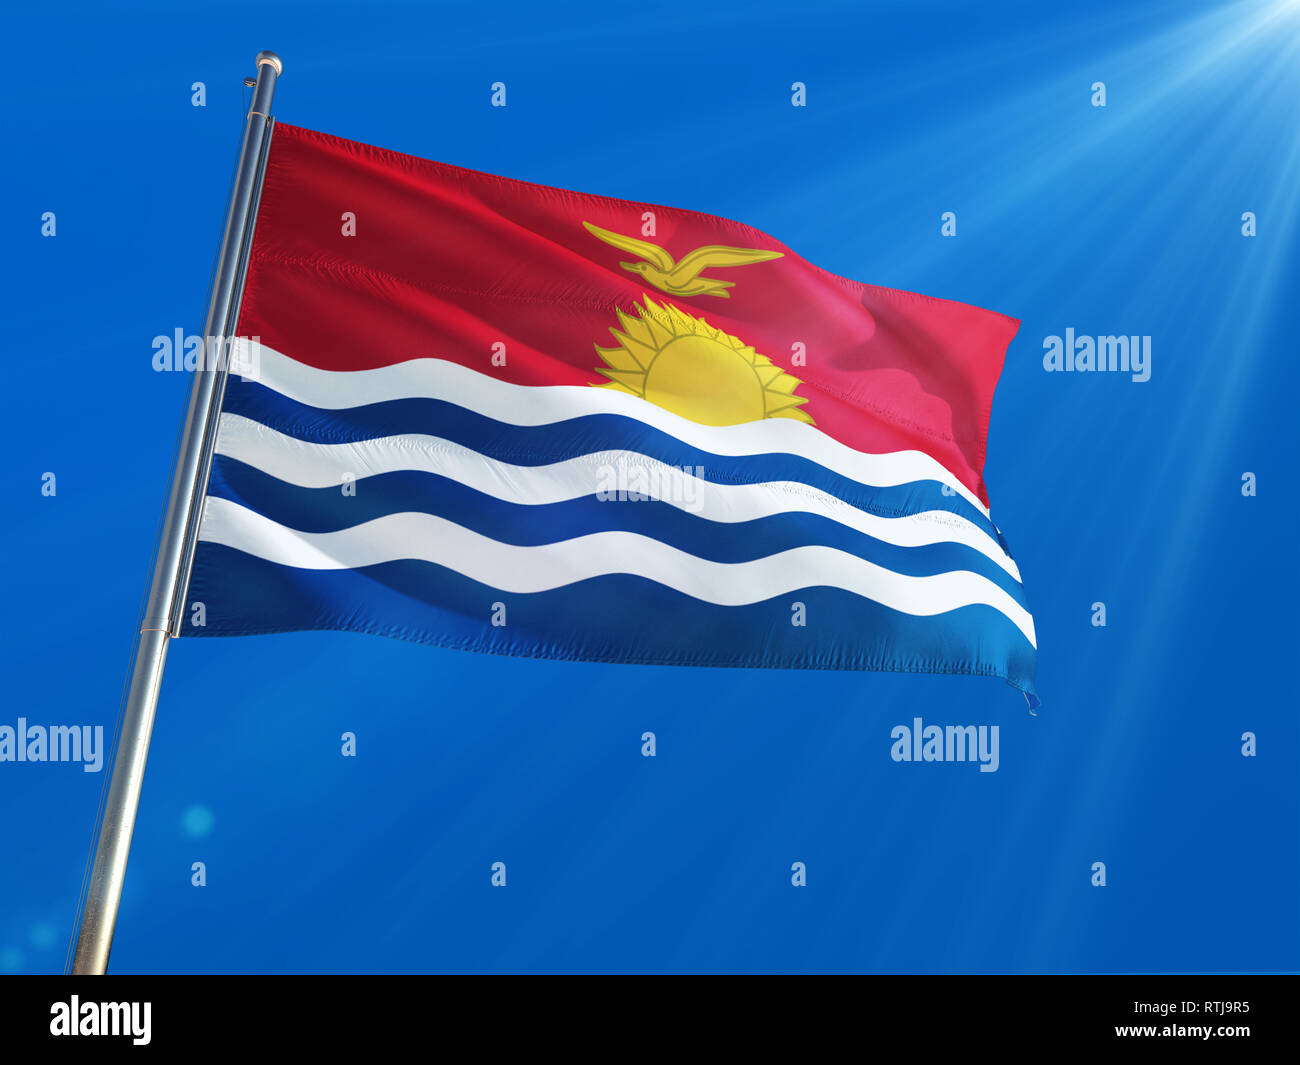 Kiribati National Flag Waving on pole against deep blue sky background. High Definition - Stock Image